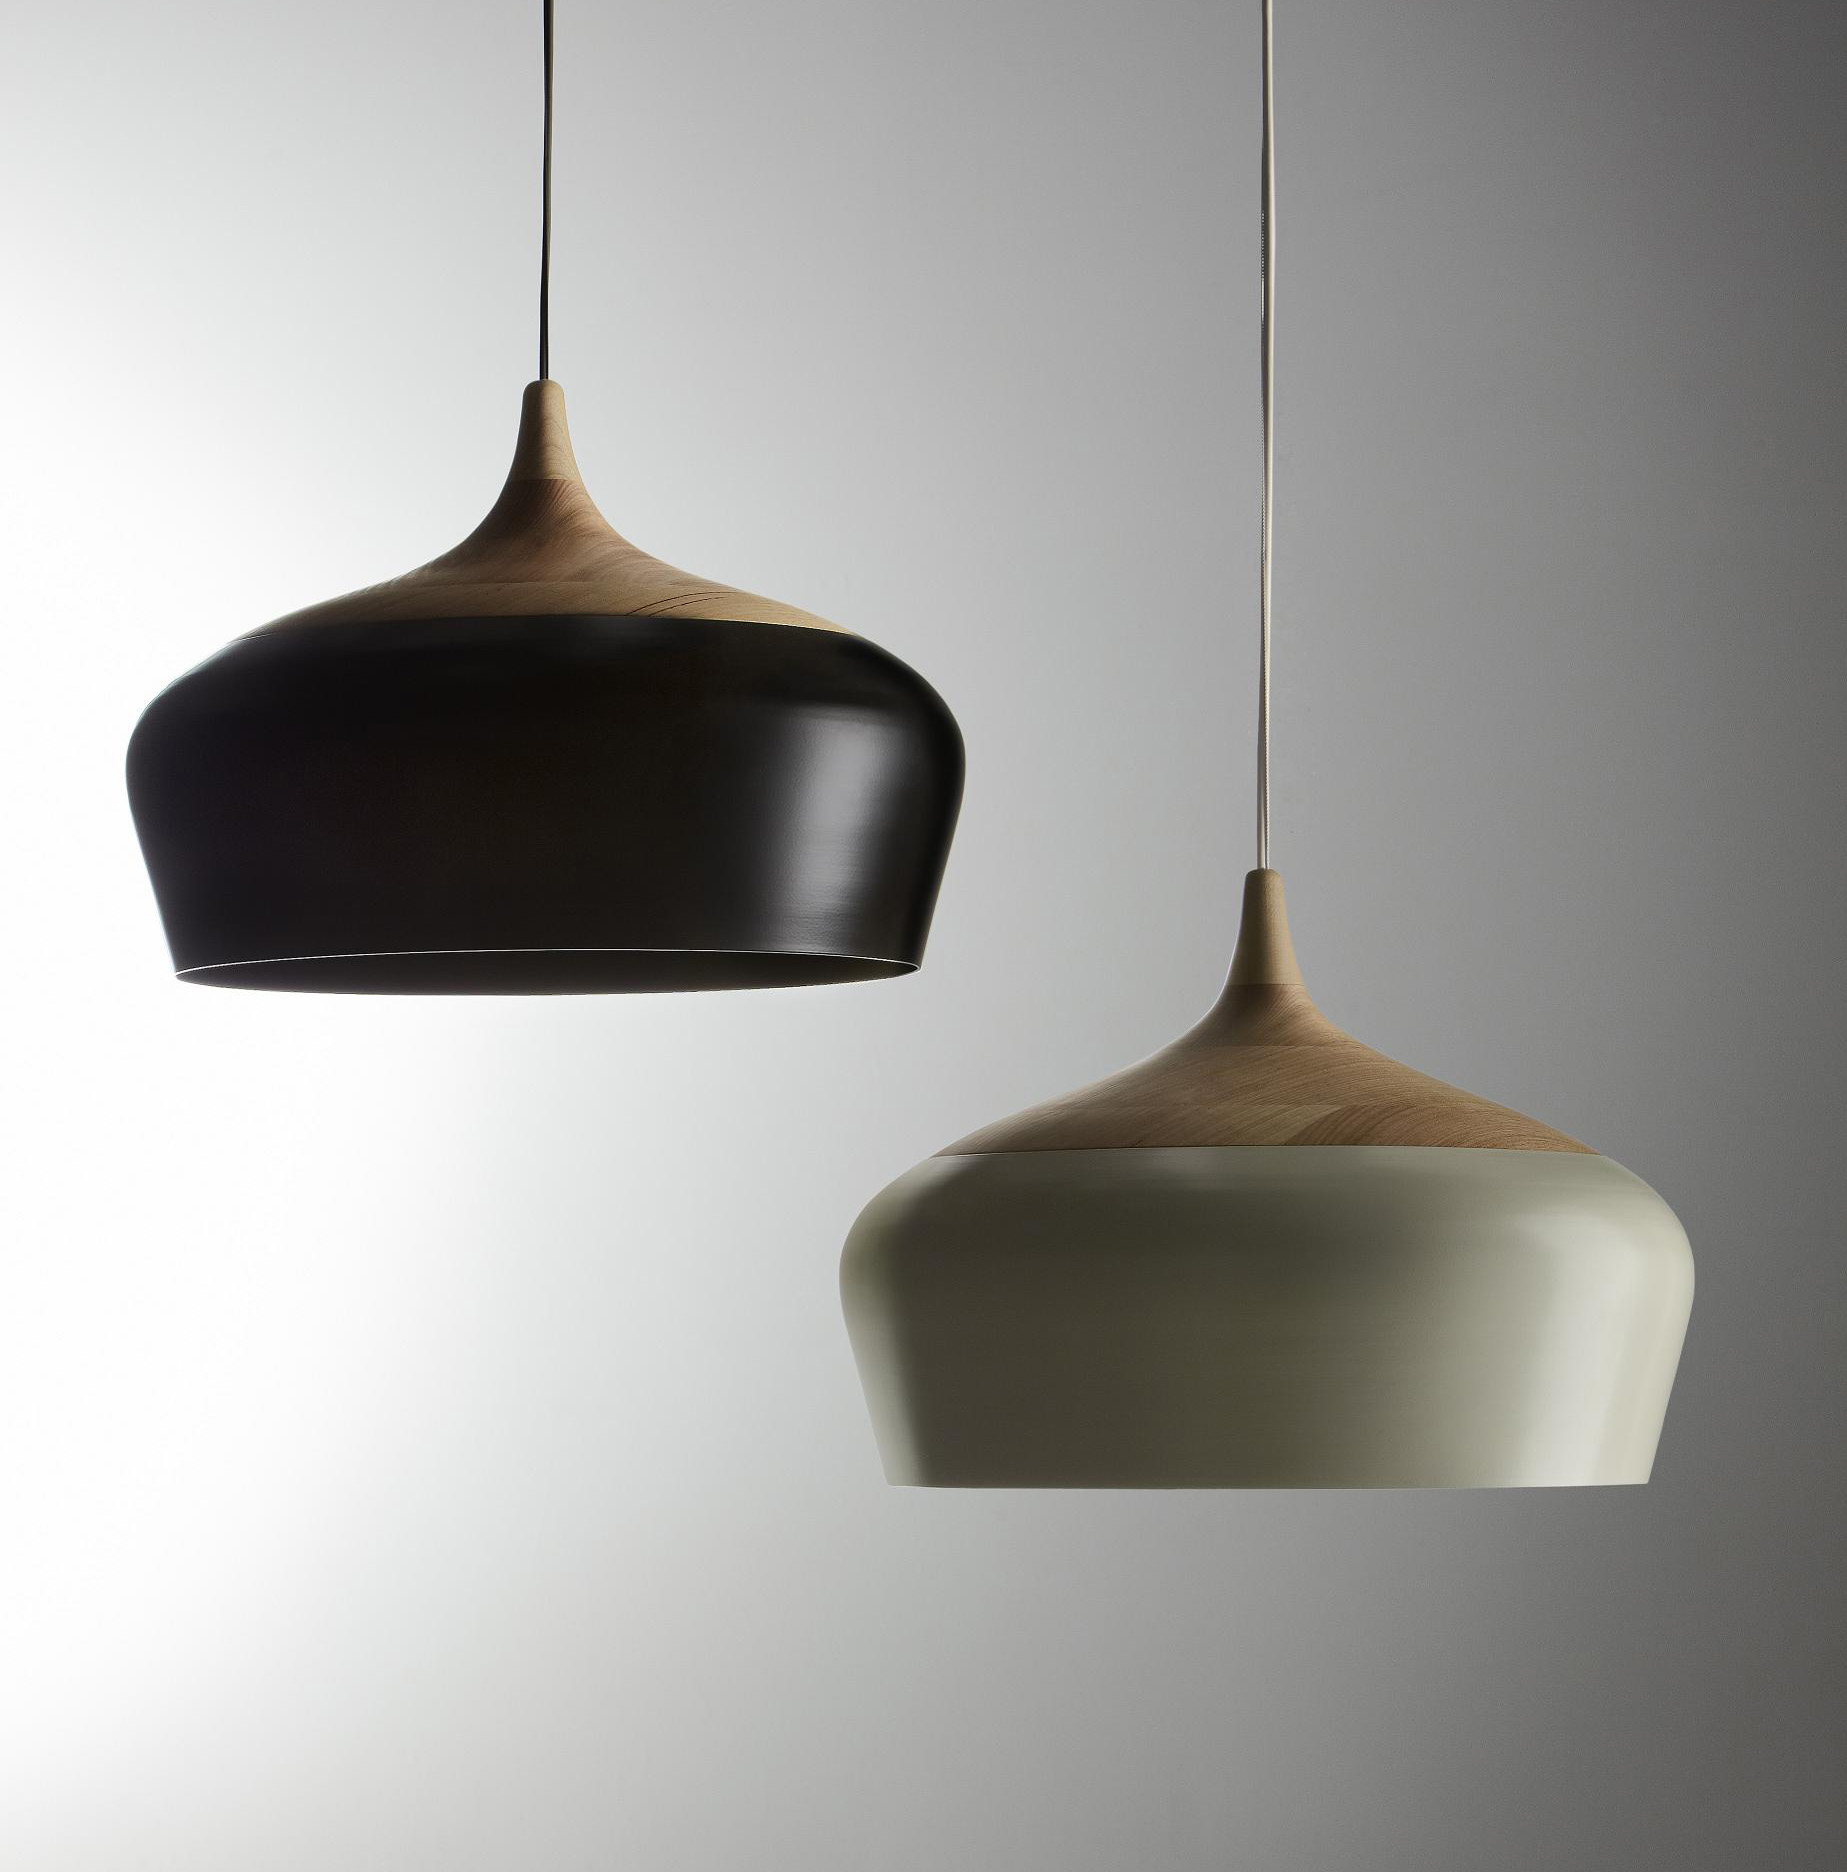 kitchen lighting fixtures 2013 pendants. Coco Flip Pendant From: . Black Or White Are Both Beautiful. Kitchen Lighting Fixtures 2013 Pendants R